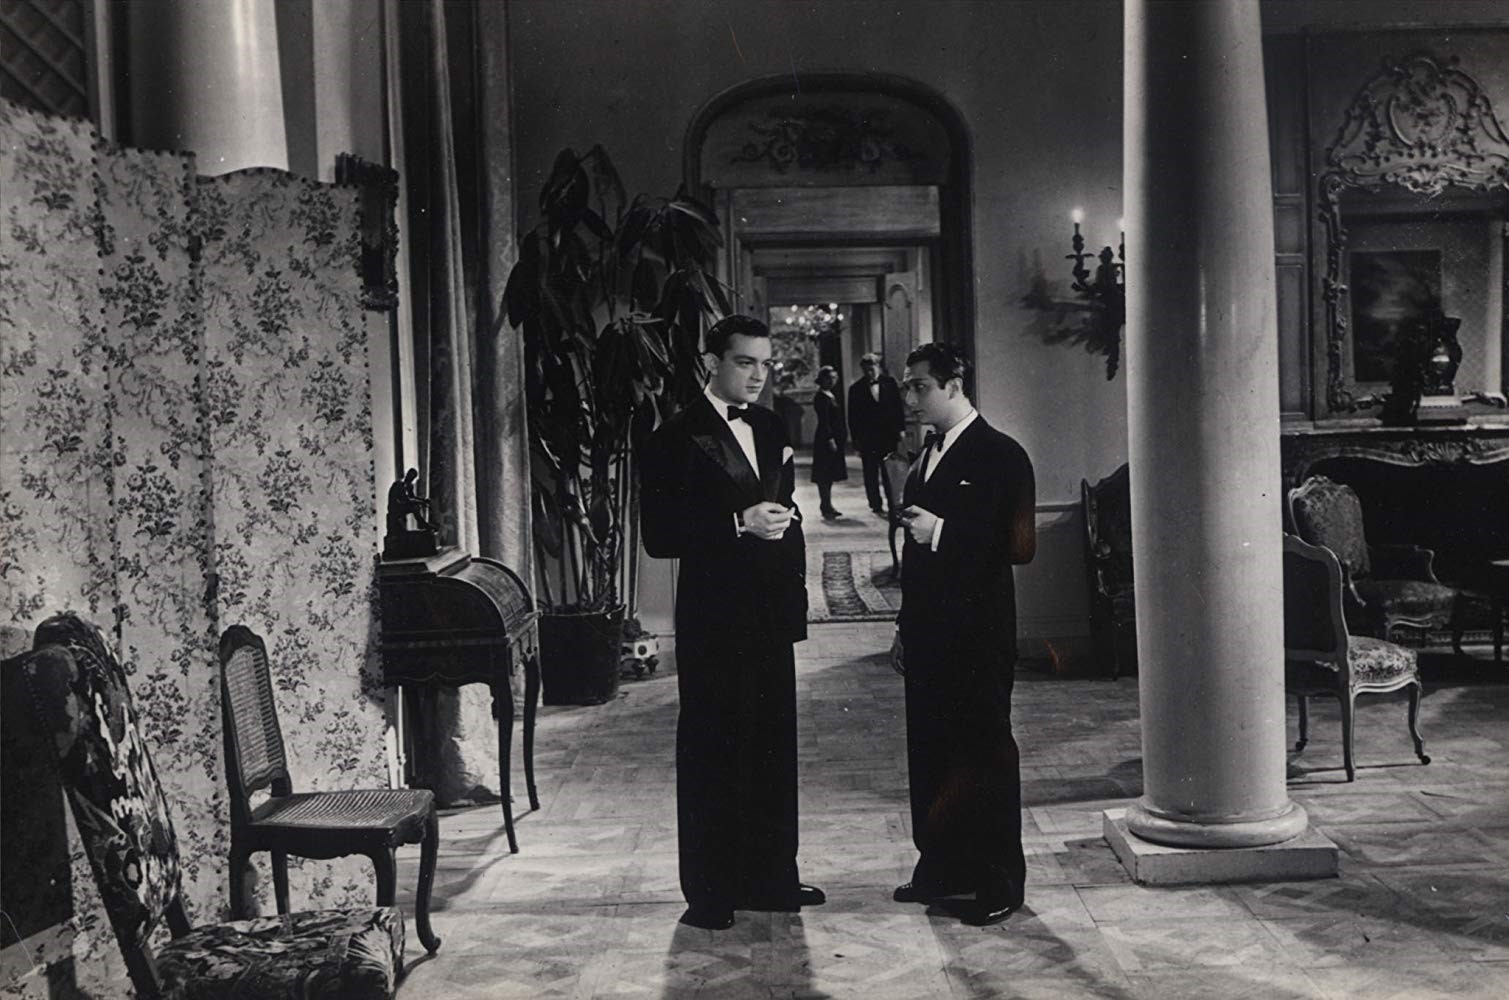 """Marcel Dalio and Roland Toutair in """"The Rules of the Game"""" (1939). Retrieved from  https://www.imdb.com/title/tt0031885/mediaviewer/rm883601920"""